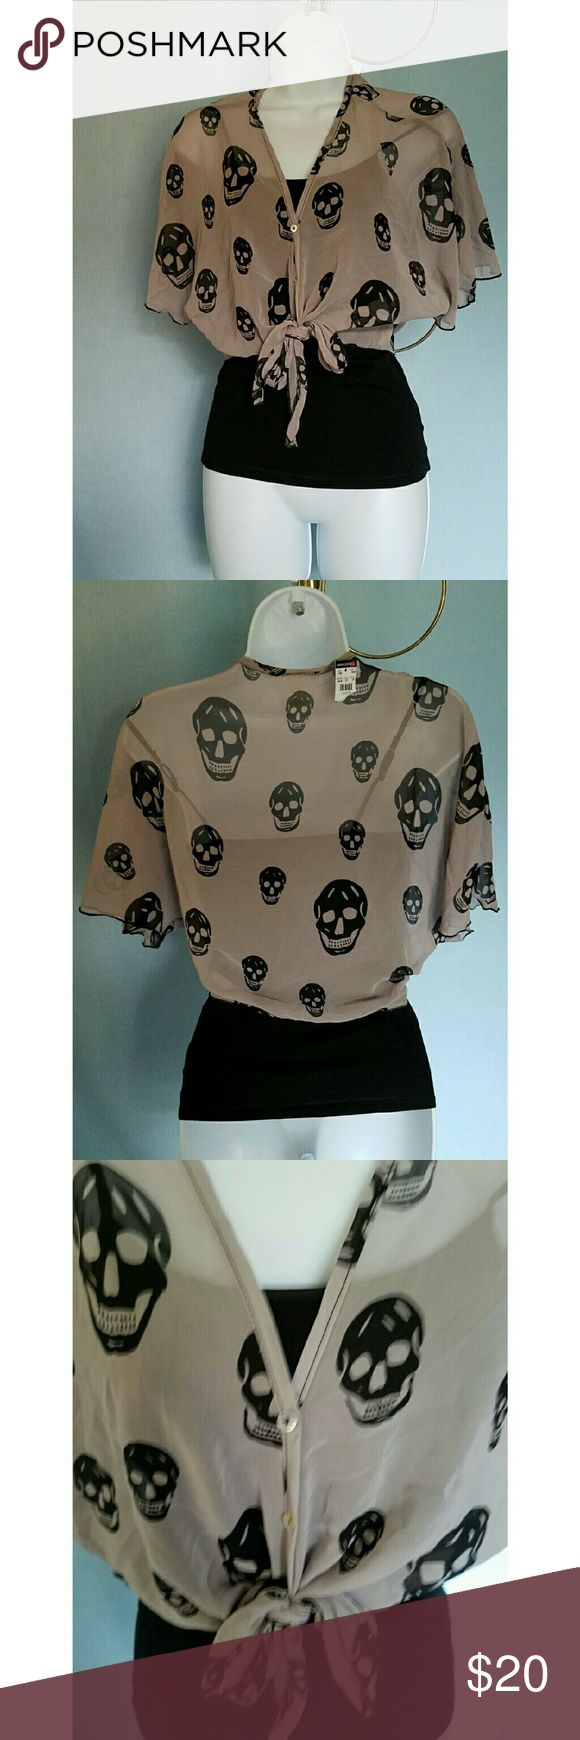 DROPBODY CENTRAL SHEER CROP SKULL SHIRT BODY CENTRAL SHEER SKULL CROP SHIRT Great shirt that looks great with a camisole underneath. Can be tied at the waist. Body Central Tops Crop Tops